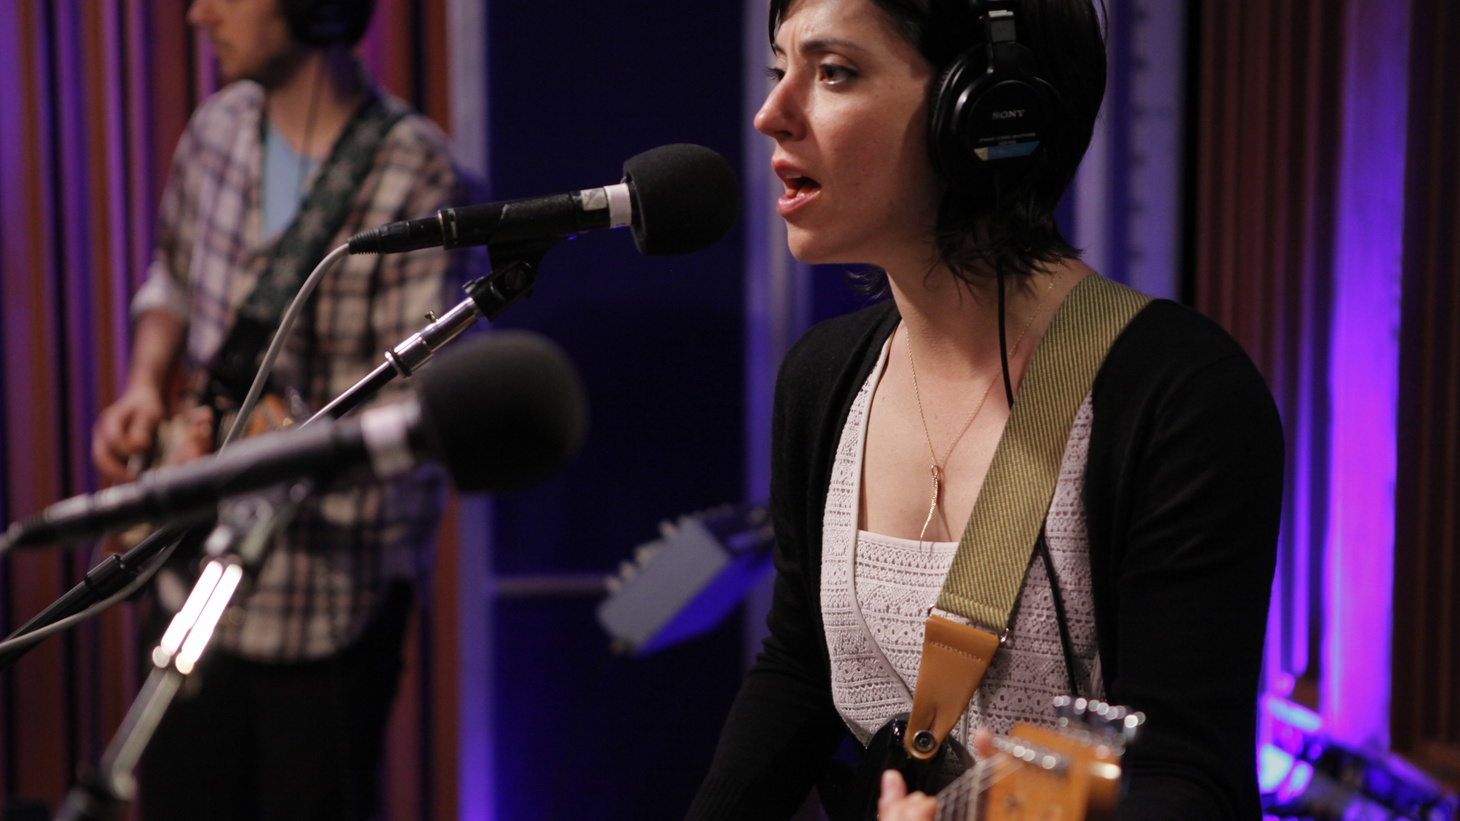 We've gathered highlights from an amazing run of talented artists performing live for KCRW recently. On this podcast we feature Sharon Van Etten, De Lux and Rodrigo Amarante.